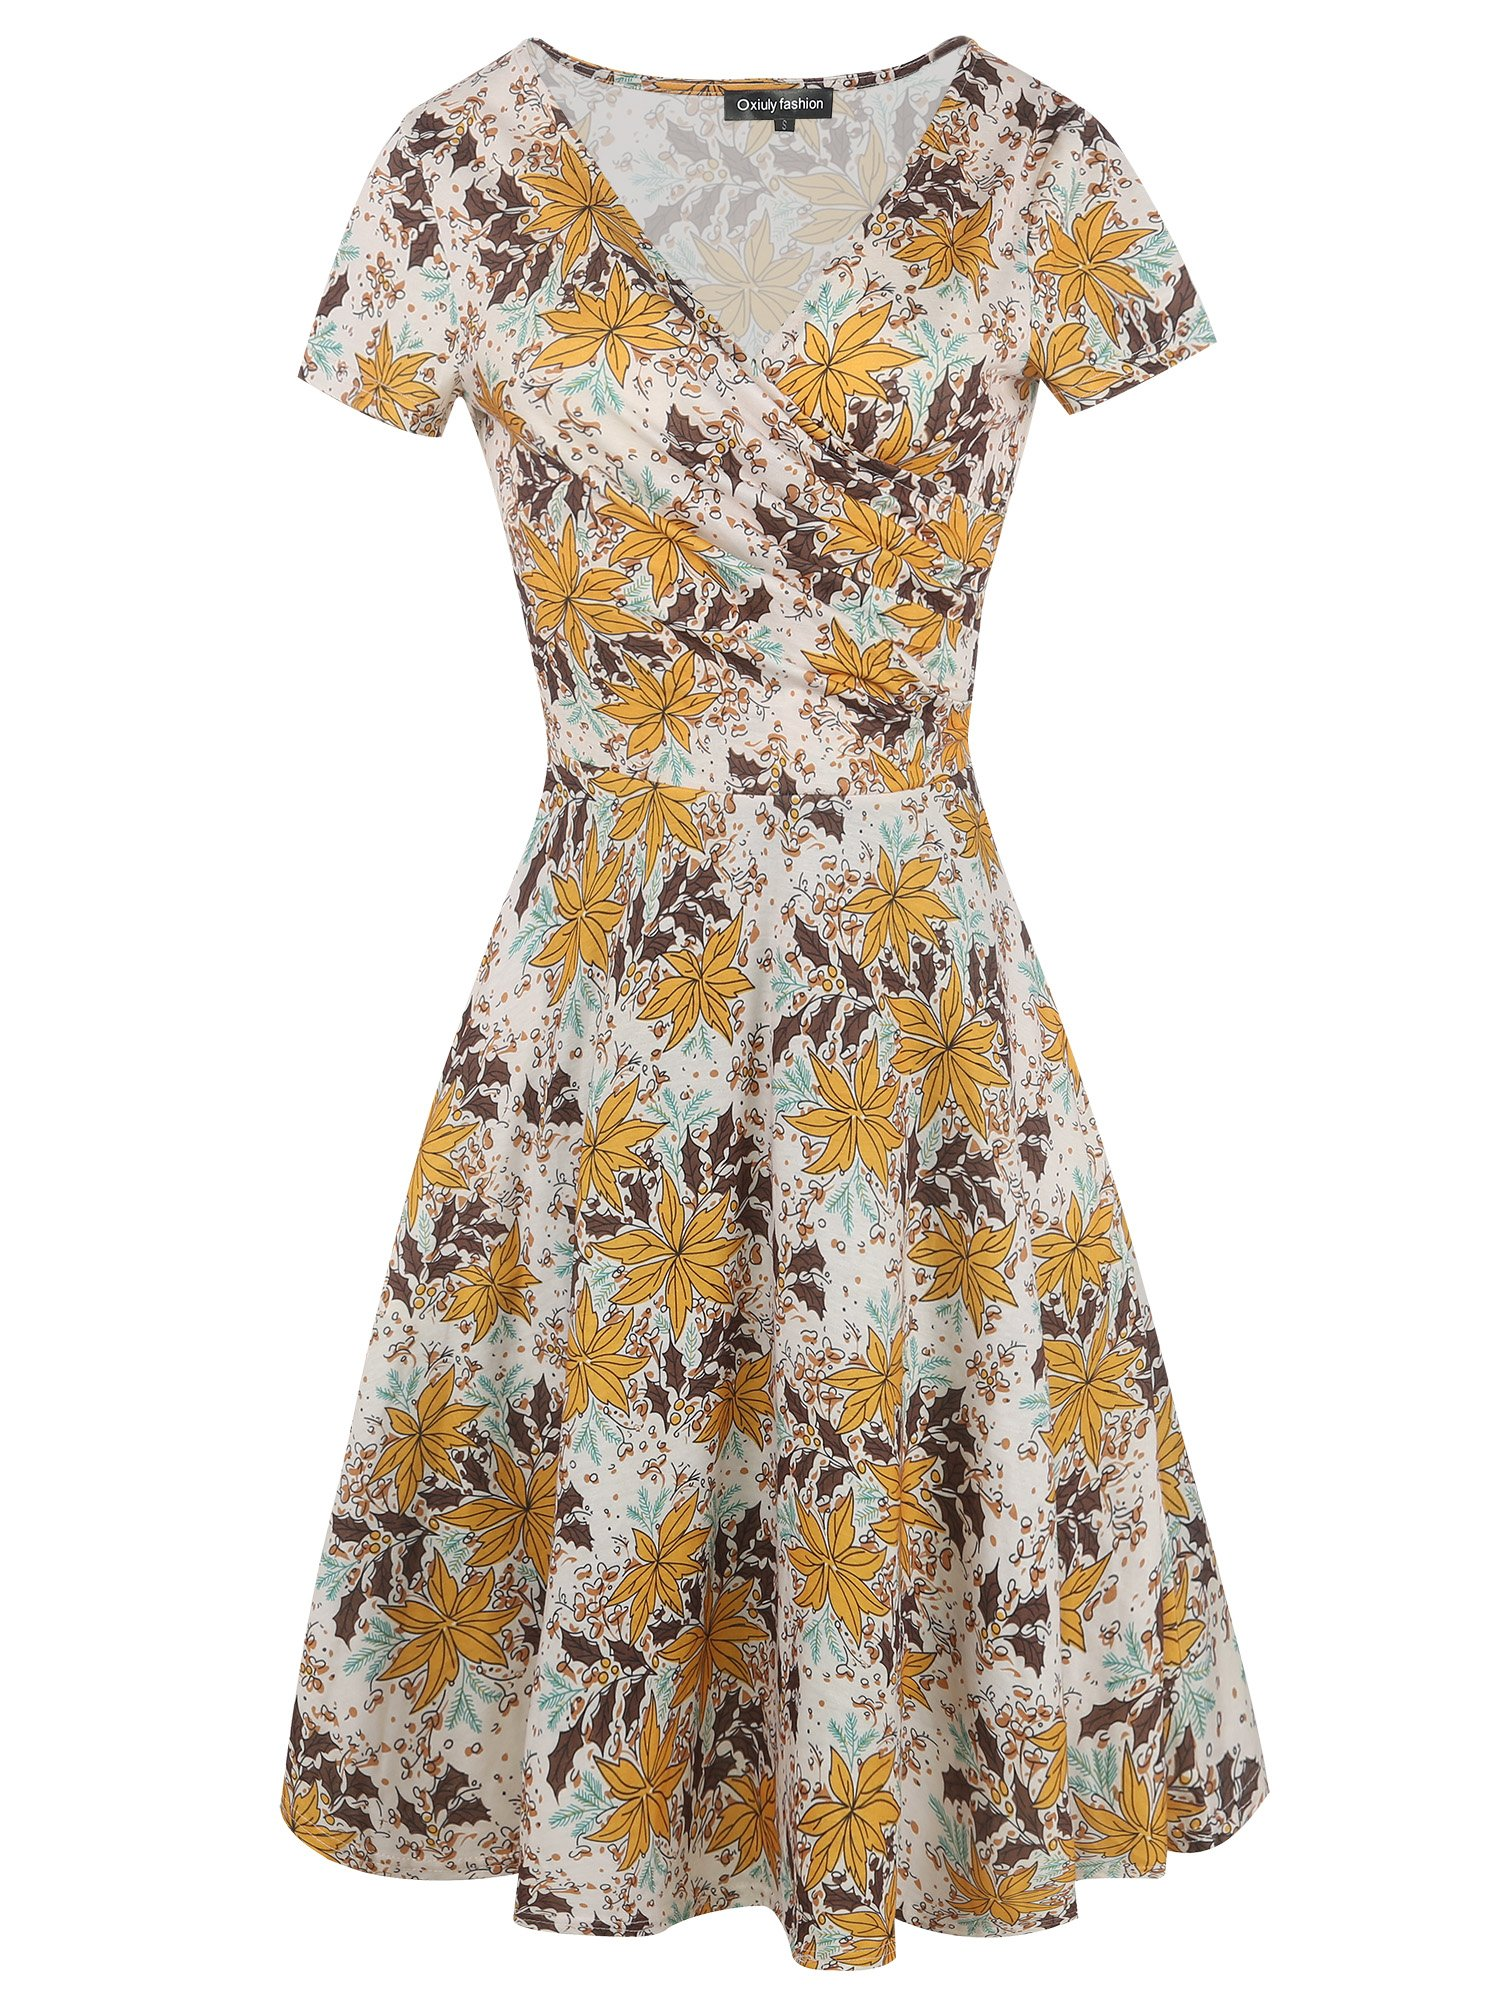 oxiuly Women's Casual Criss-Cross Necklines Short Sleeve Work Business Swing Summer Dress OX288 (Yellow White, L)